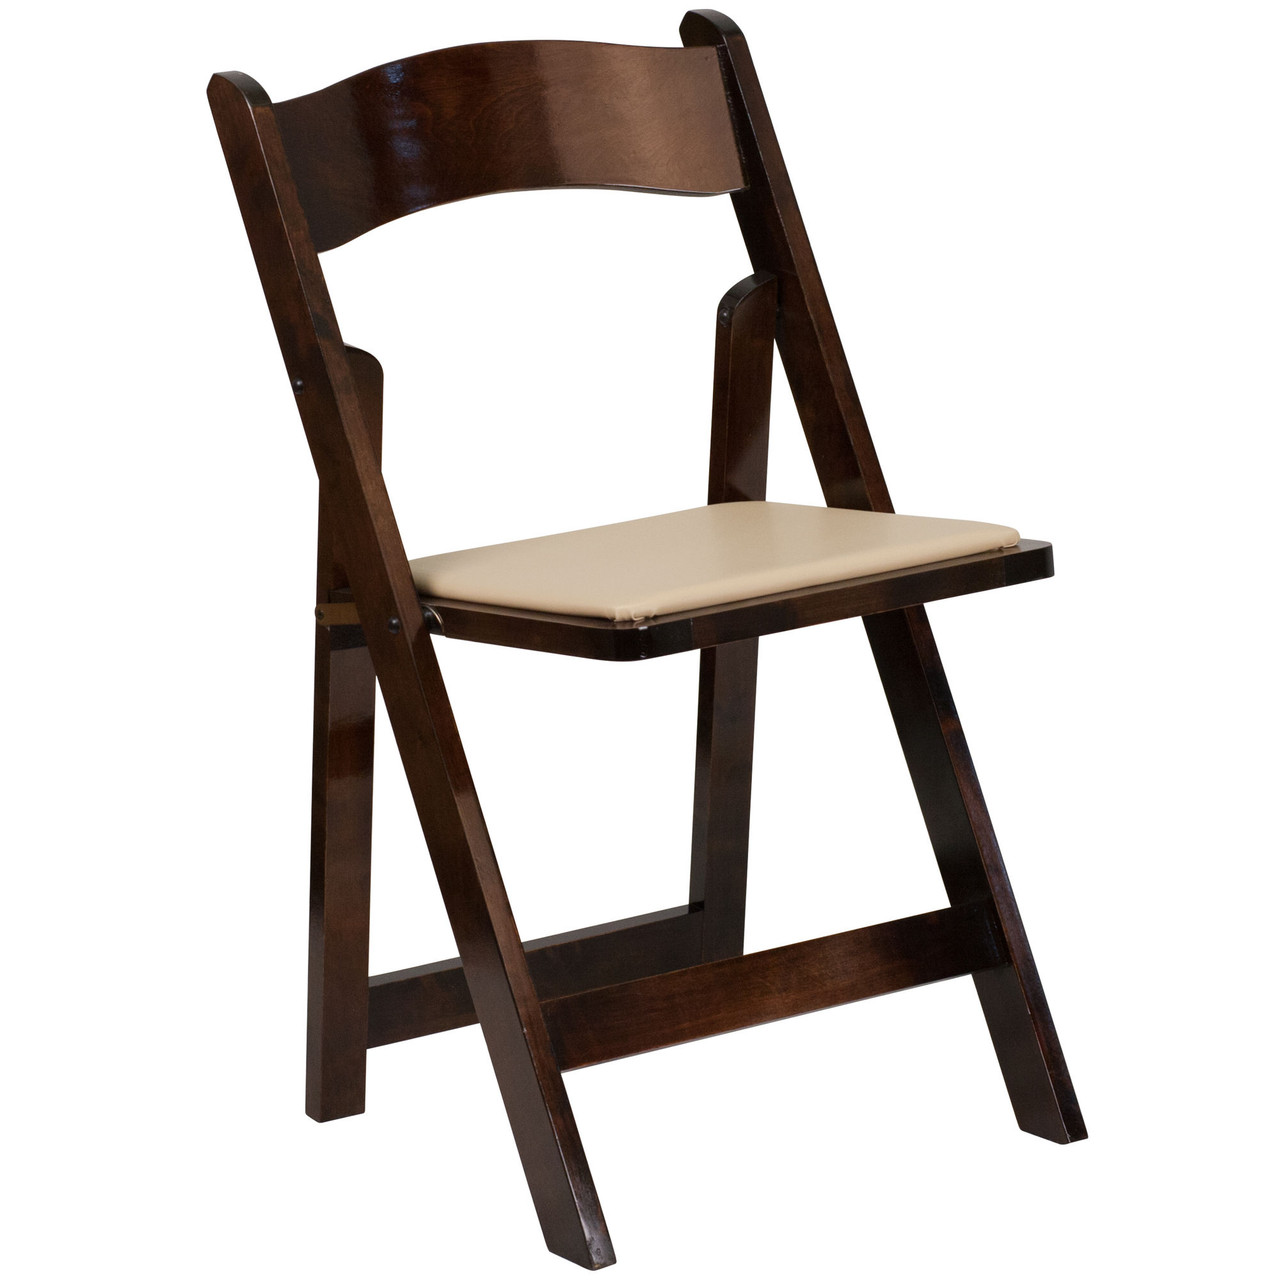 Stupendous Advantage Wood Folding Wedding Chair Fruitwood Xf 2903 Fruit Wood Gg Ncnpc Chair Design For Home Ncnpcorg